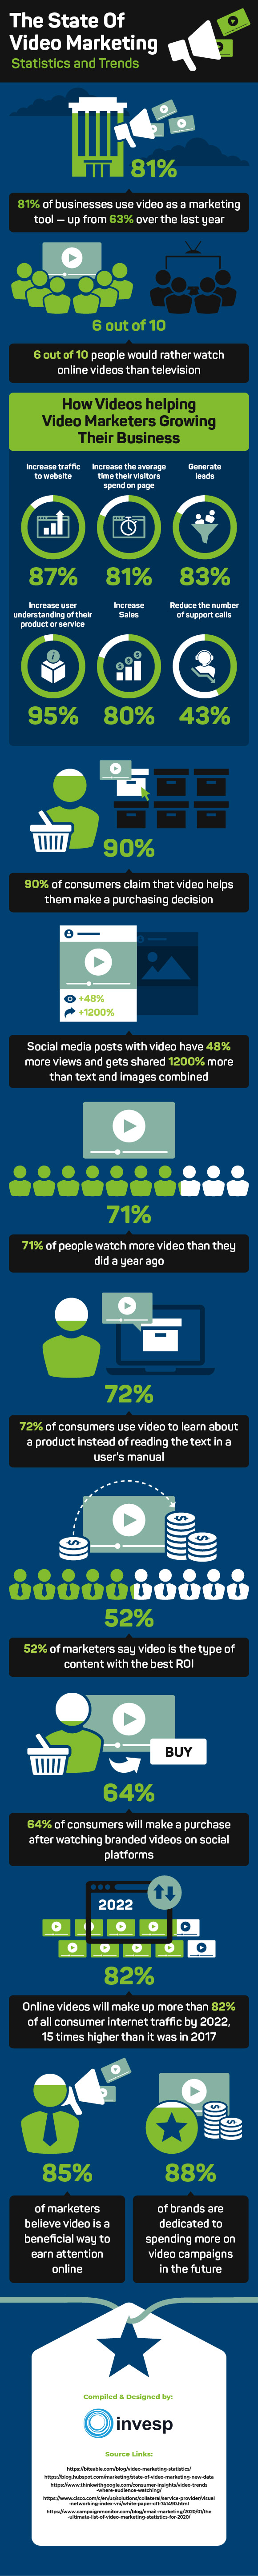 The State of Video Marketing – Statistics and Trends